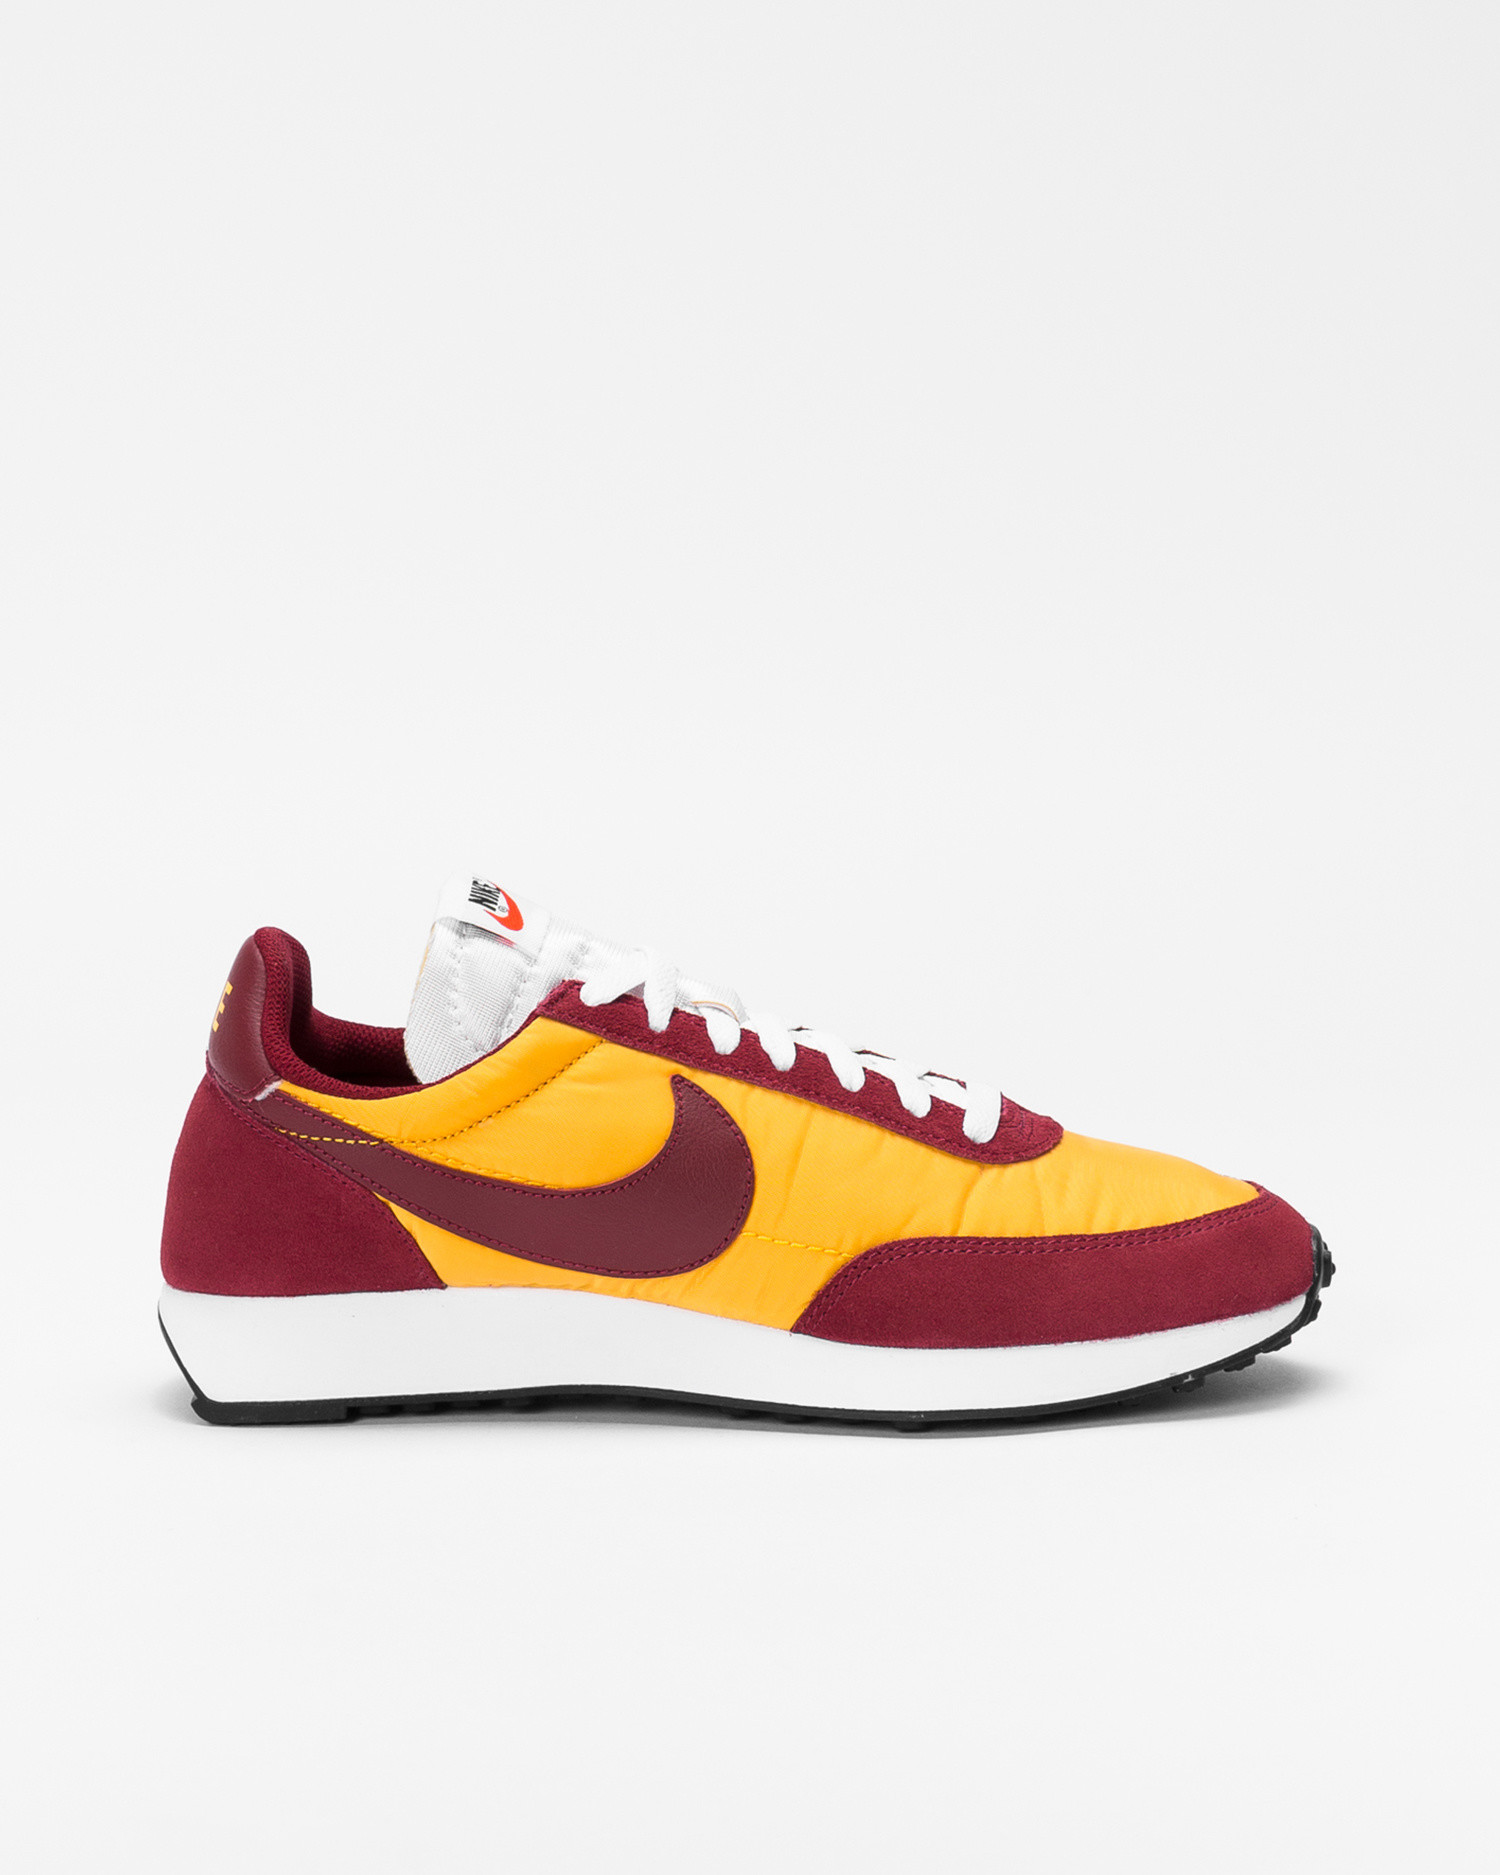 Nike Air Tailwind 79 University Gold/Team Red-White-Black